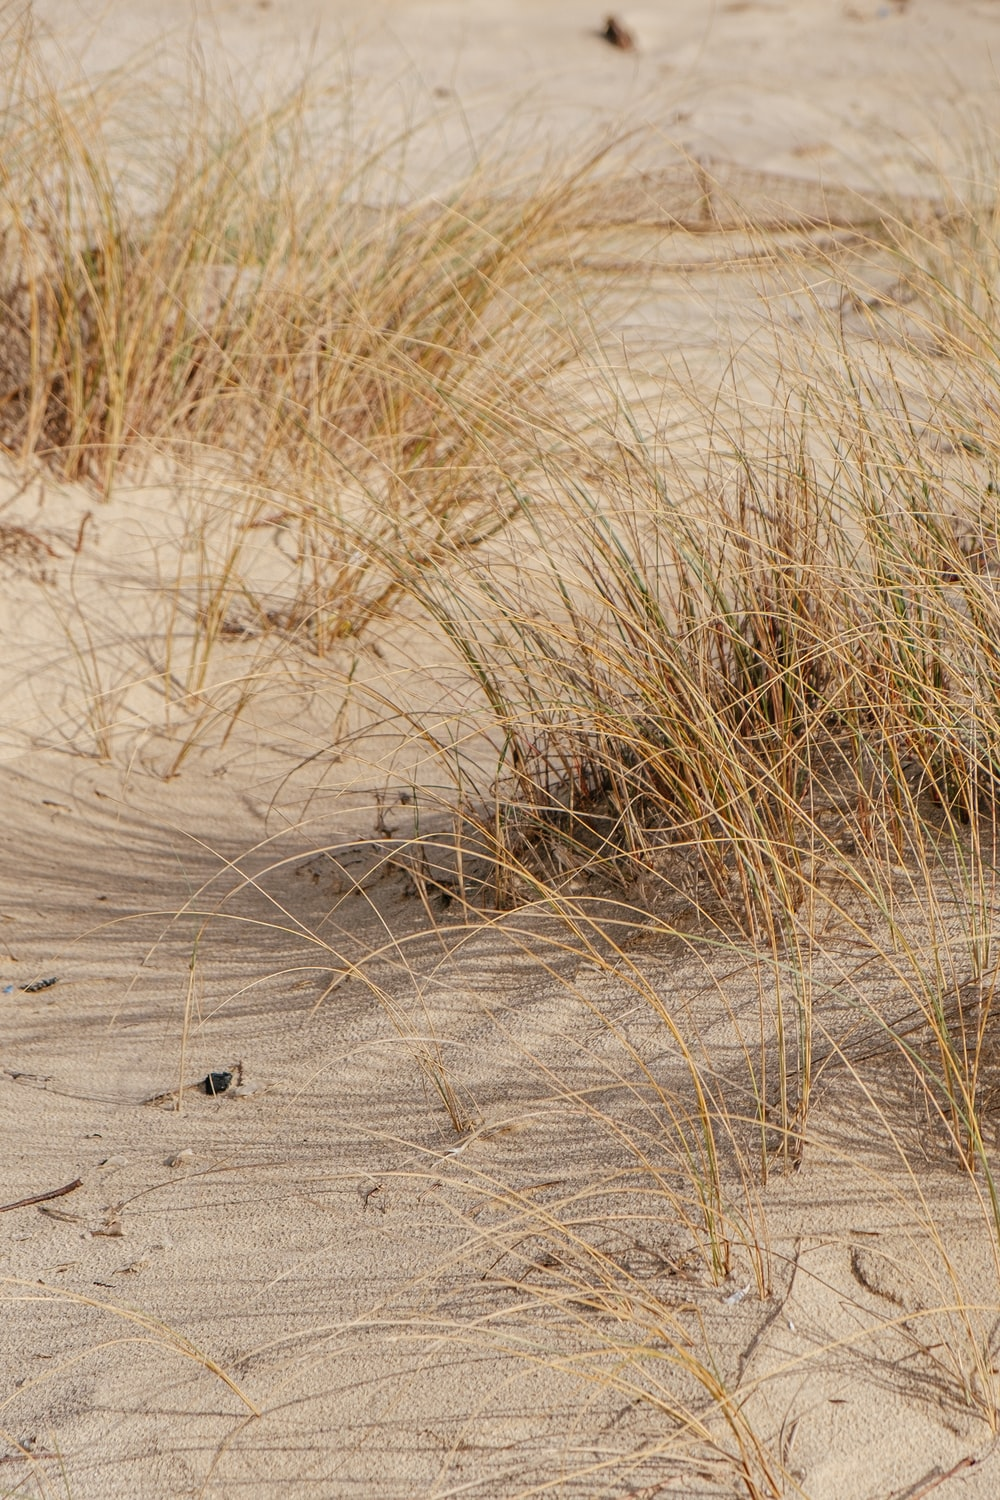 brown grass on brown sand during daytime